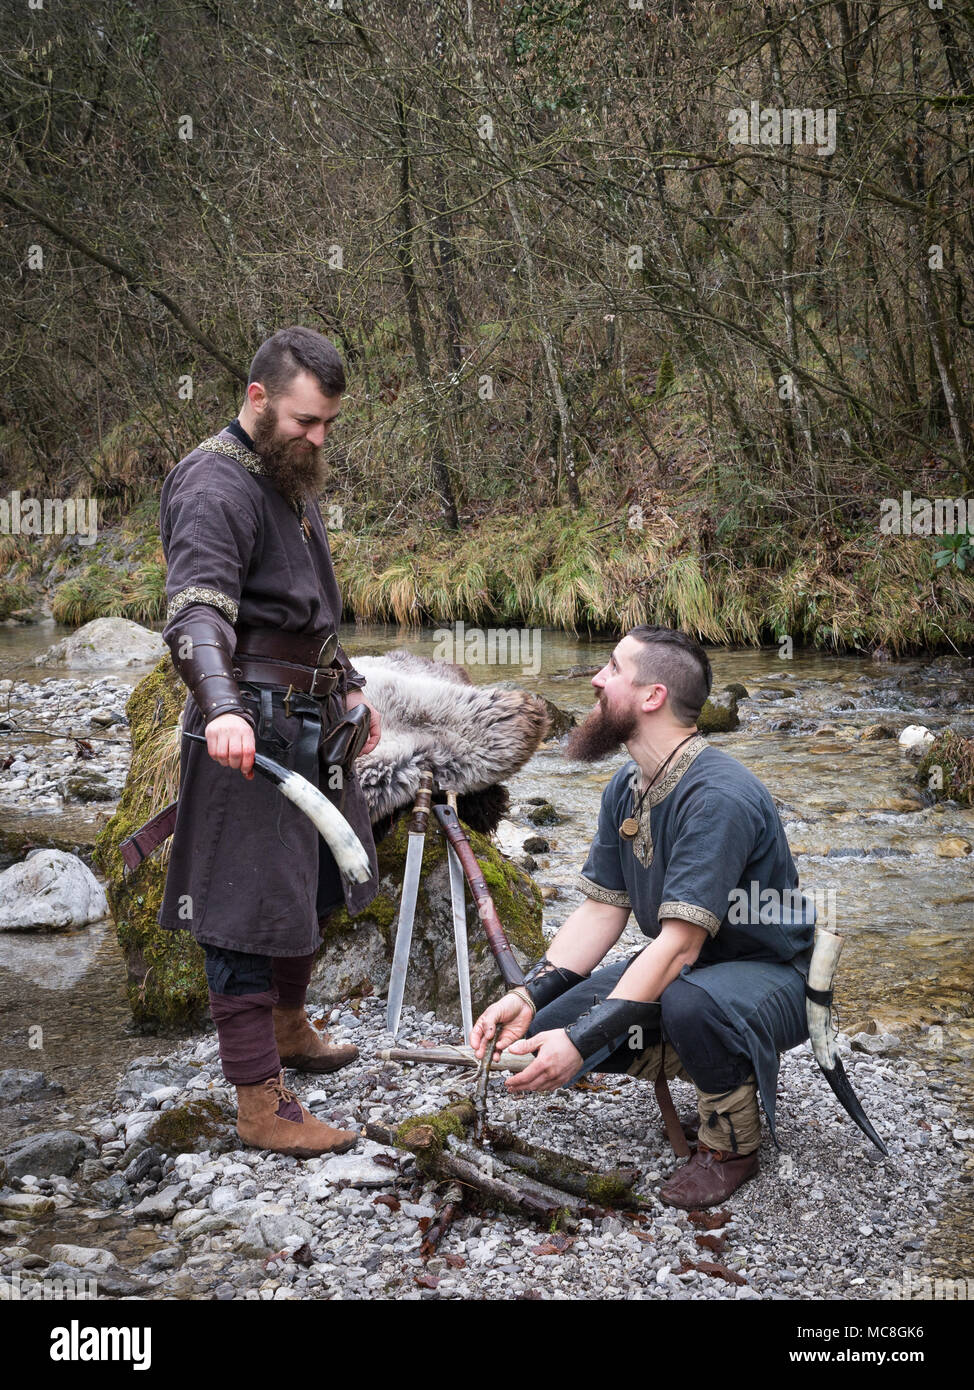 two Vikings in the forest on the banks of the river - Stock Image